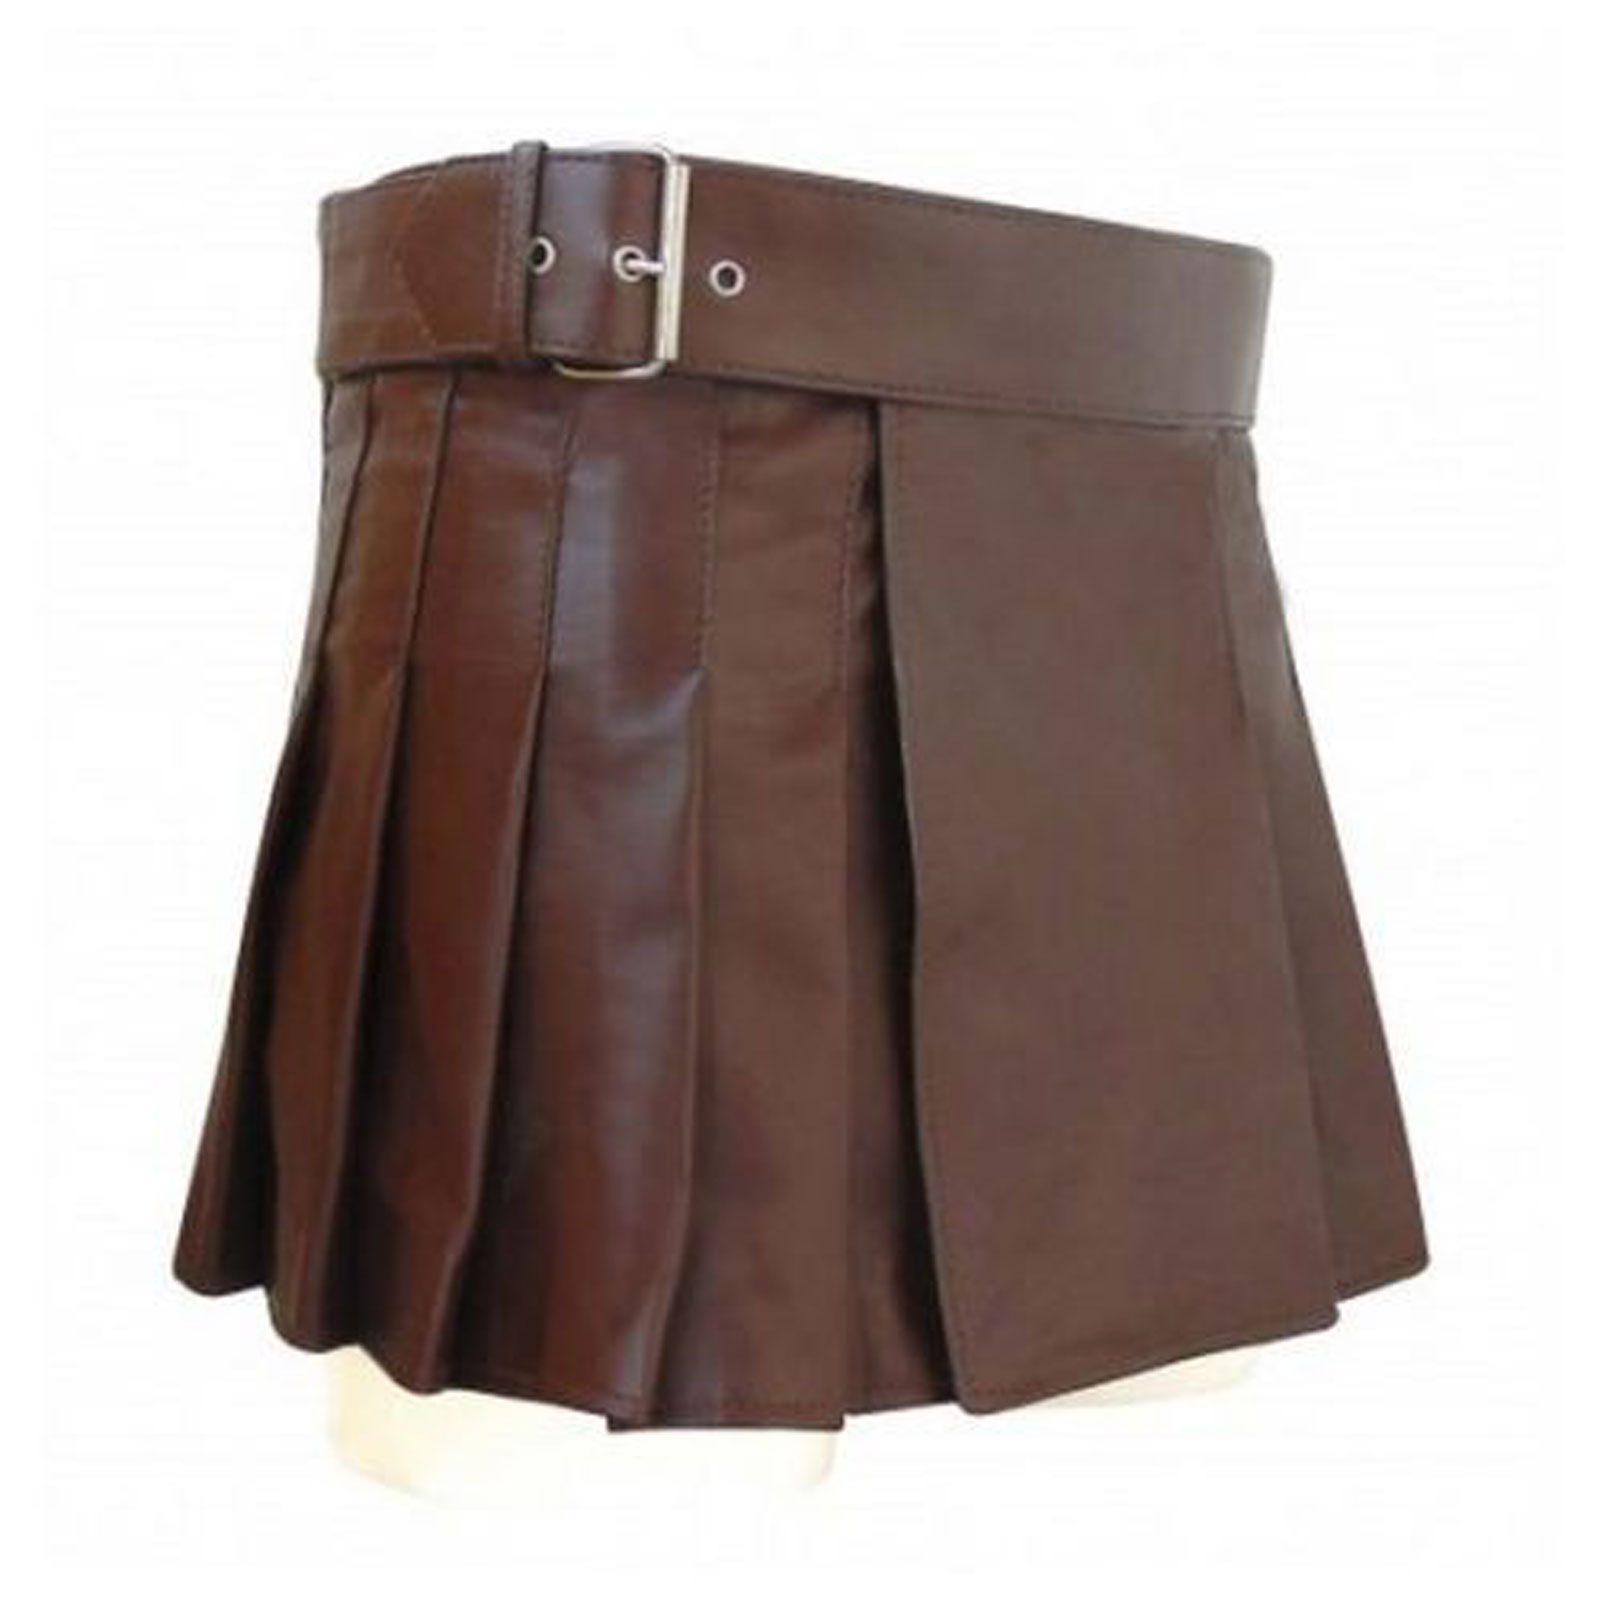 scottish-black-leather-highland-gladiator-viking-utility-kilt-side